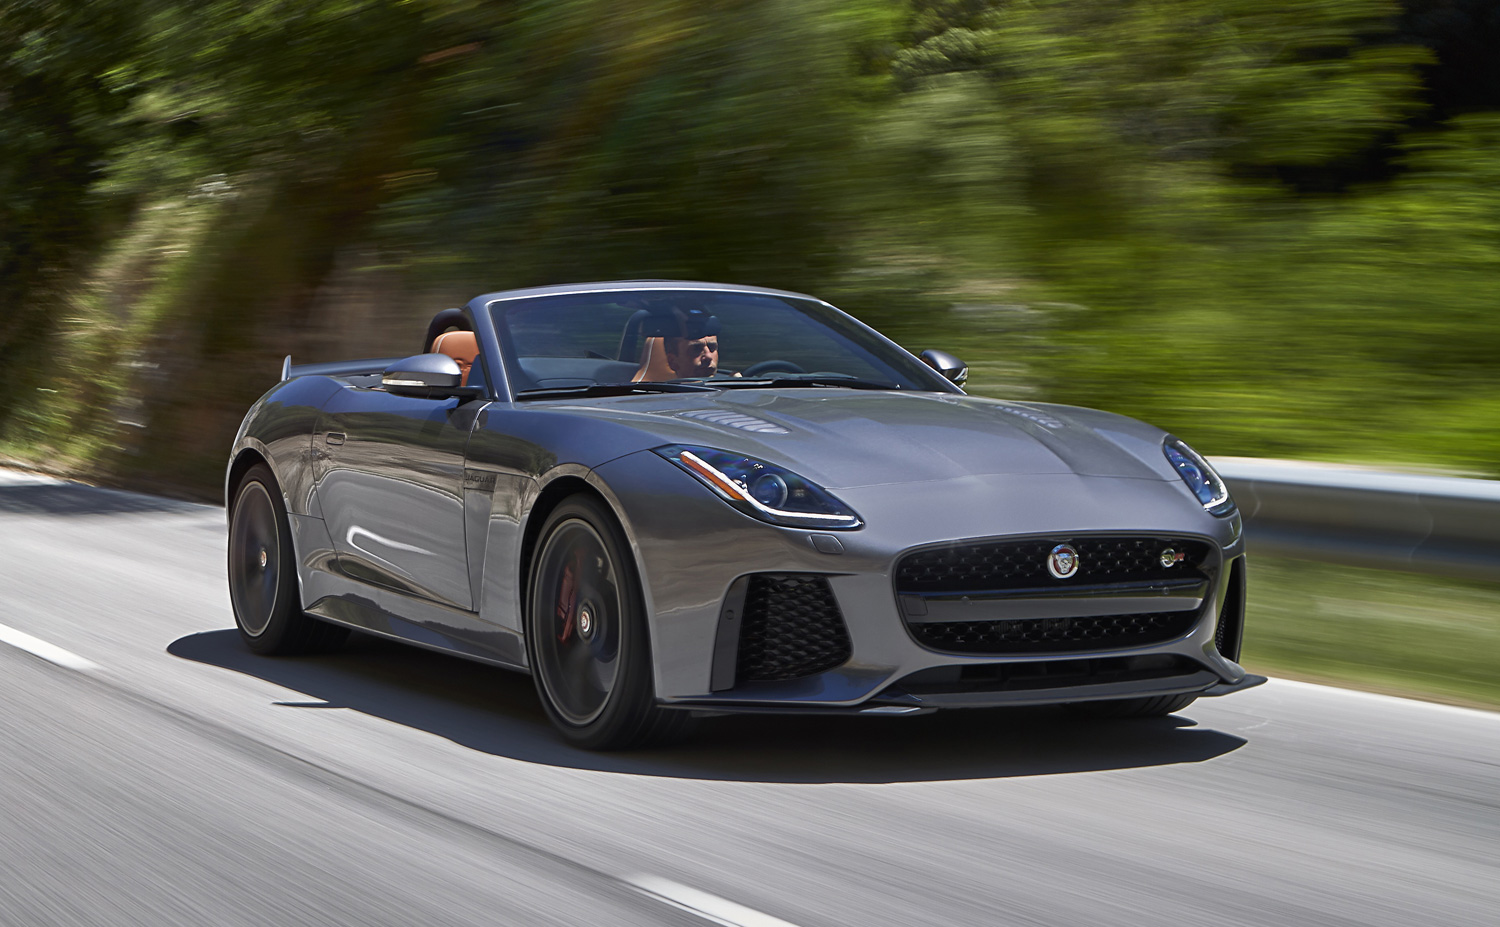 the f type svr jaguar 39 s all weather supercar luxurious magazine. Black Bedroom Furniture Sets. Home Design Ideas